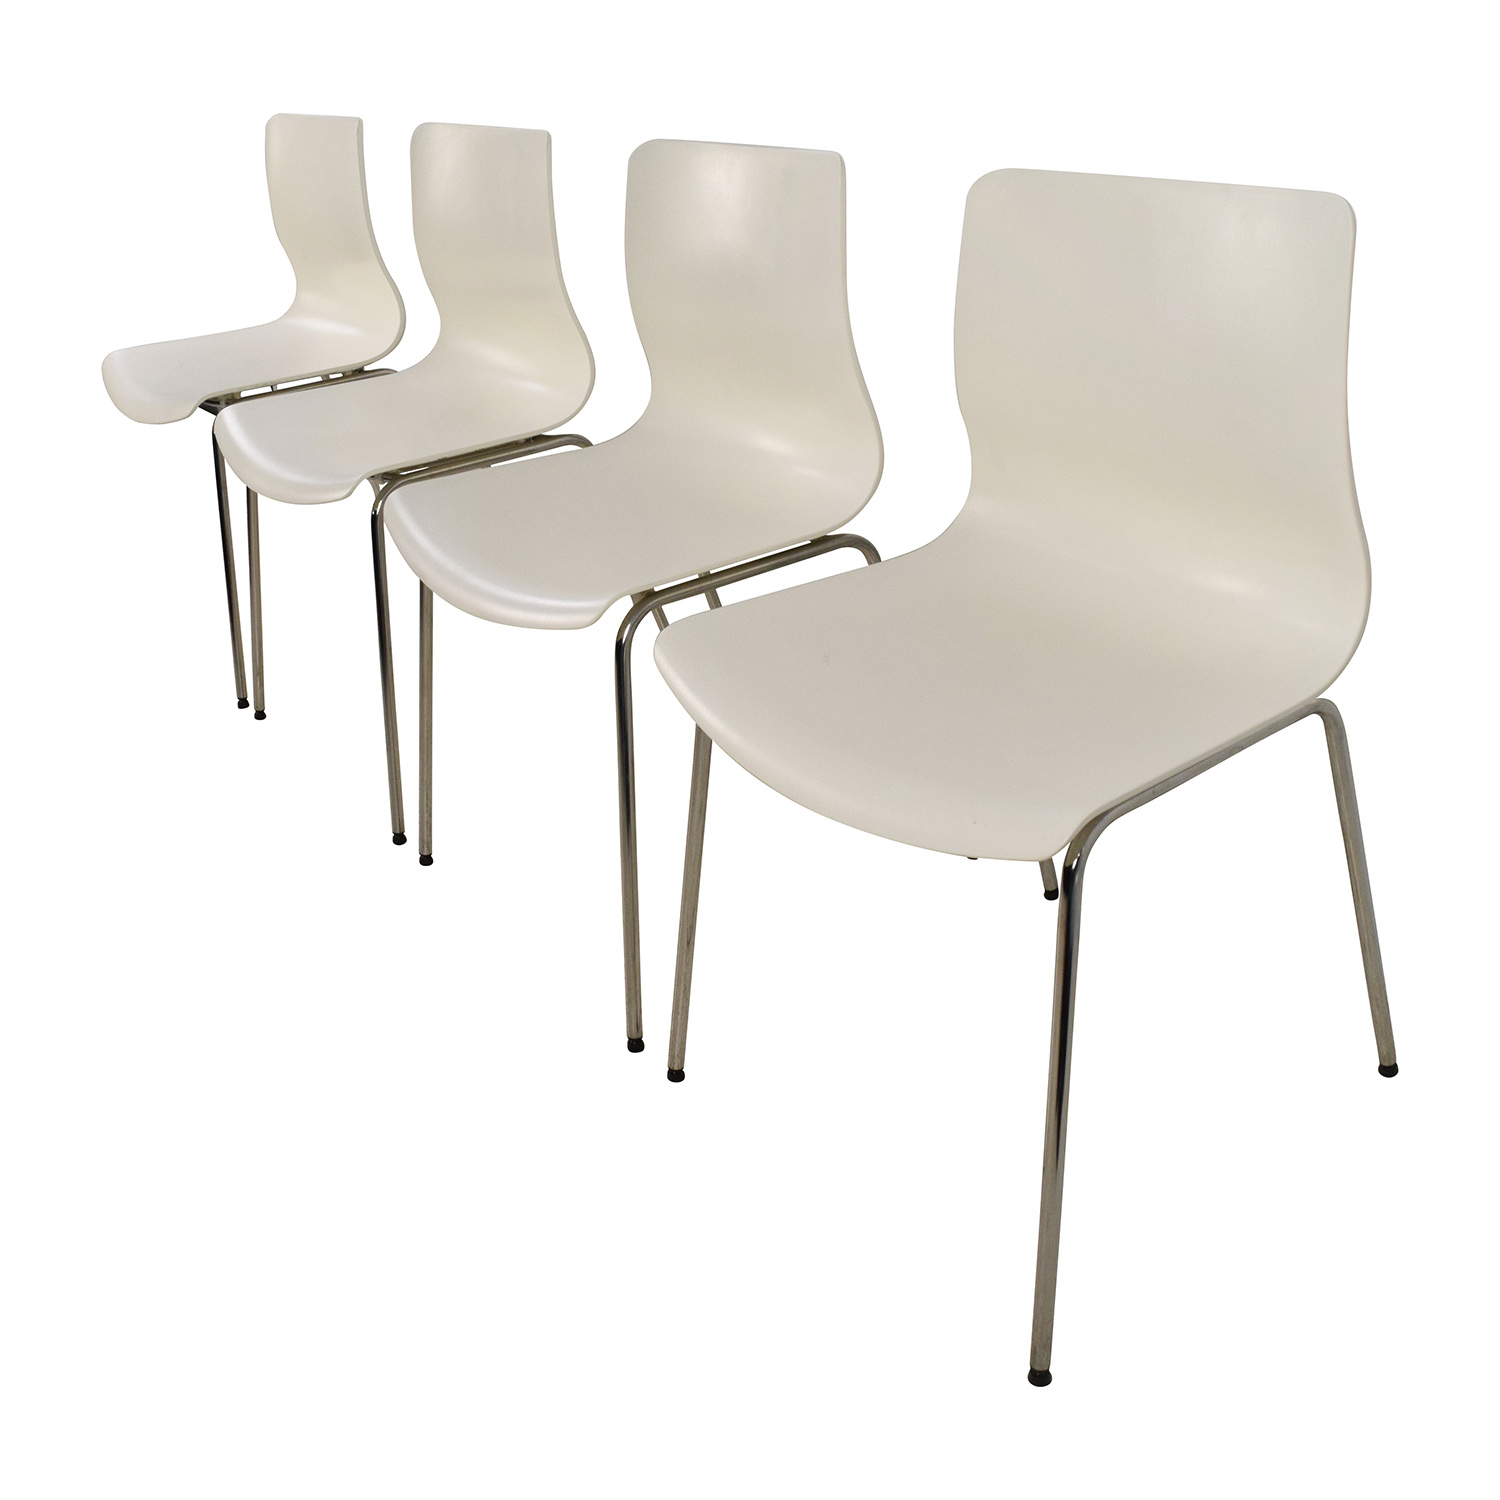 63 off ikea ikea erlund white chairs chairs for Ikea white chair